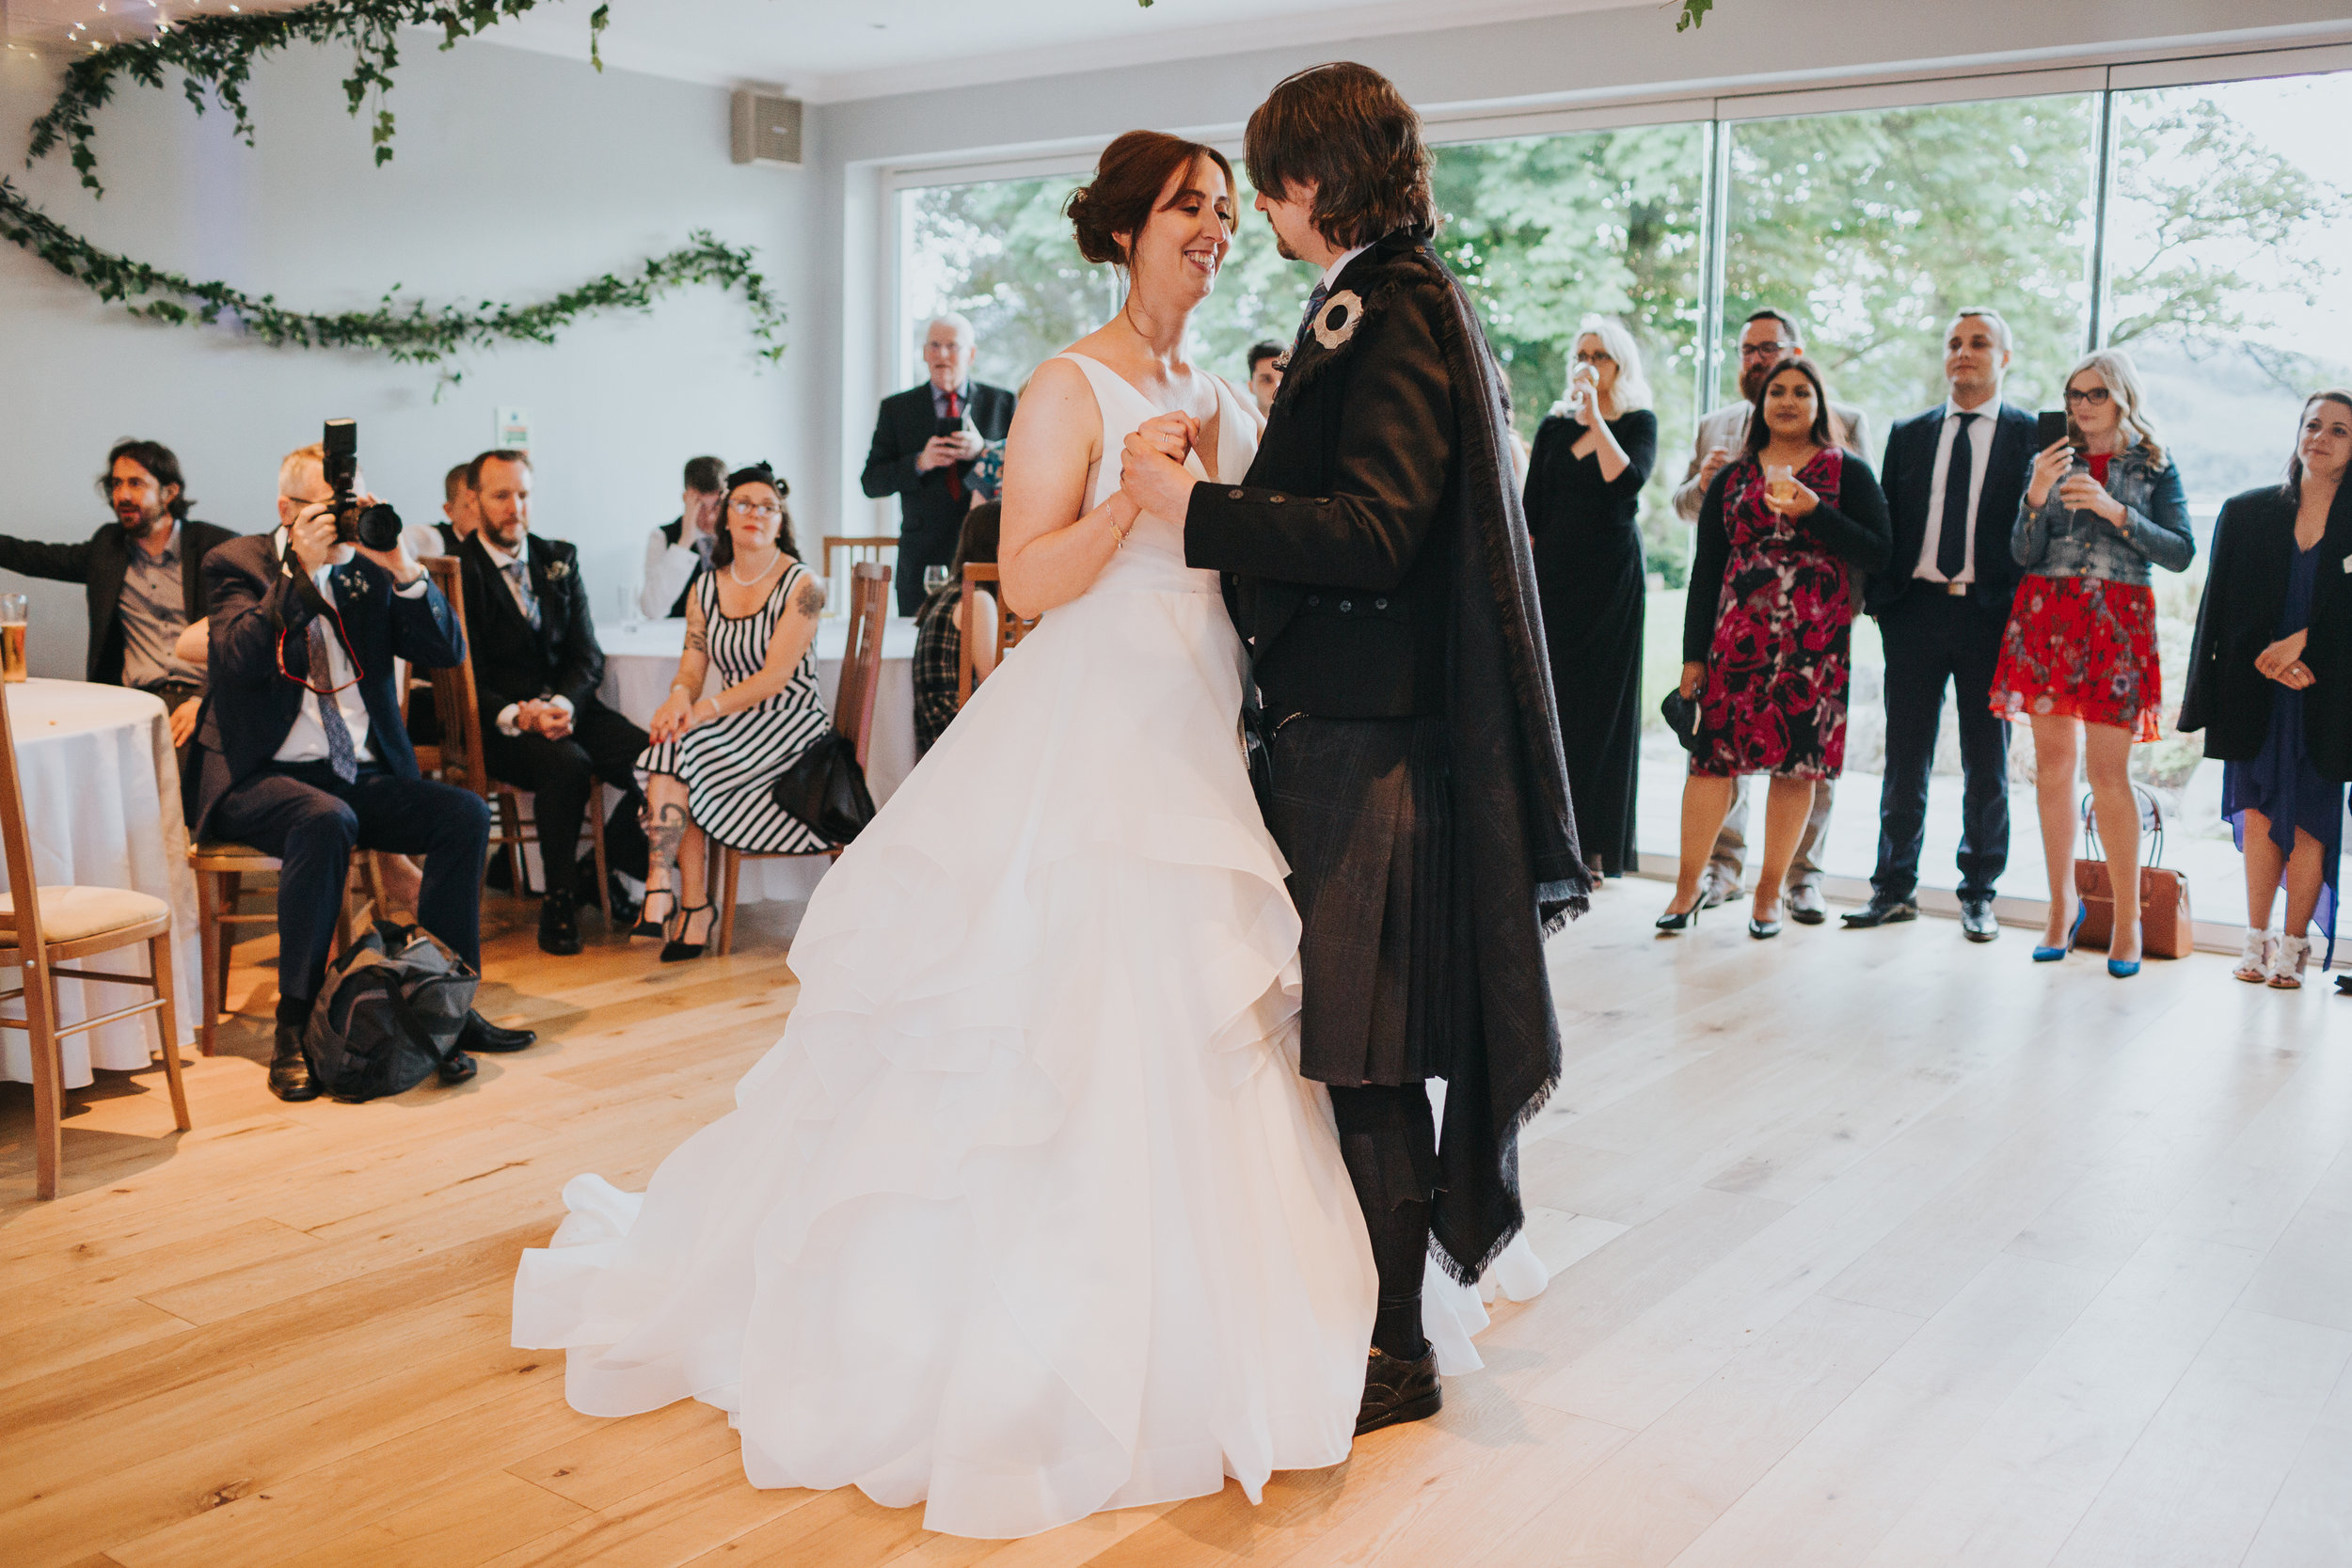 Bride and groom have their first dance.